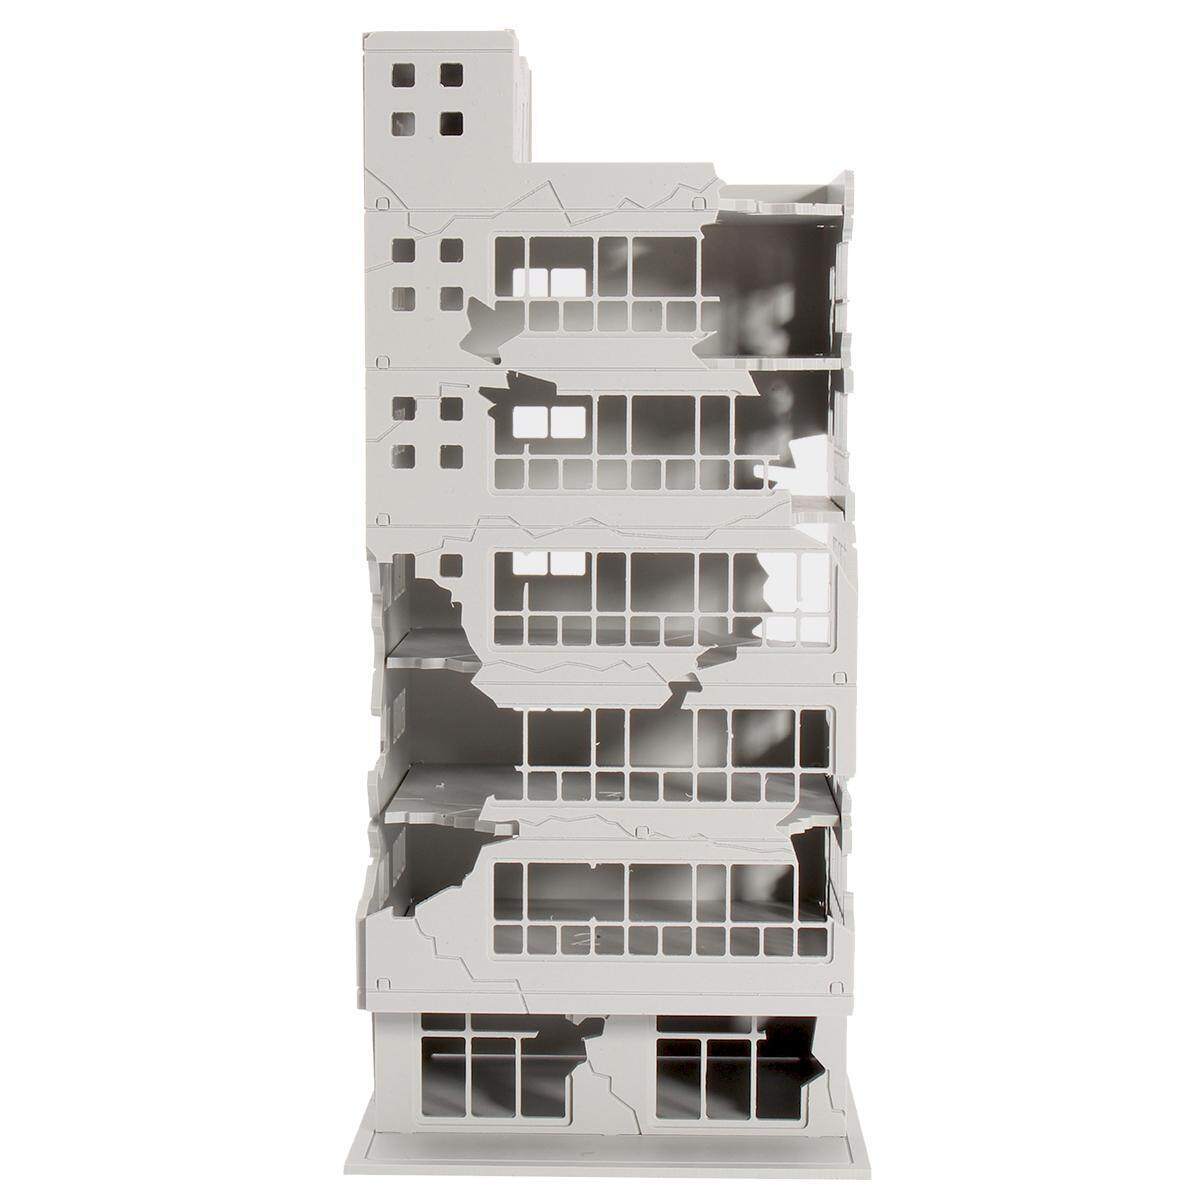 Hình ảnh N Scale 1/144 White Battle Corner Ruined Building GUNDAM 7.9*7.2*16.9cm Gifts - intl